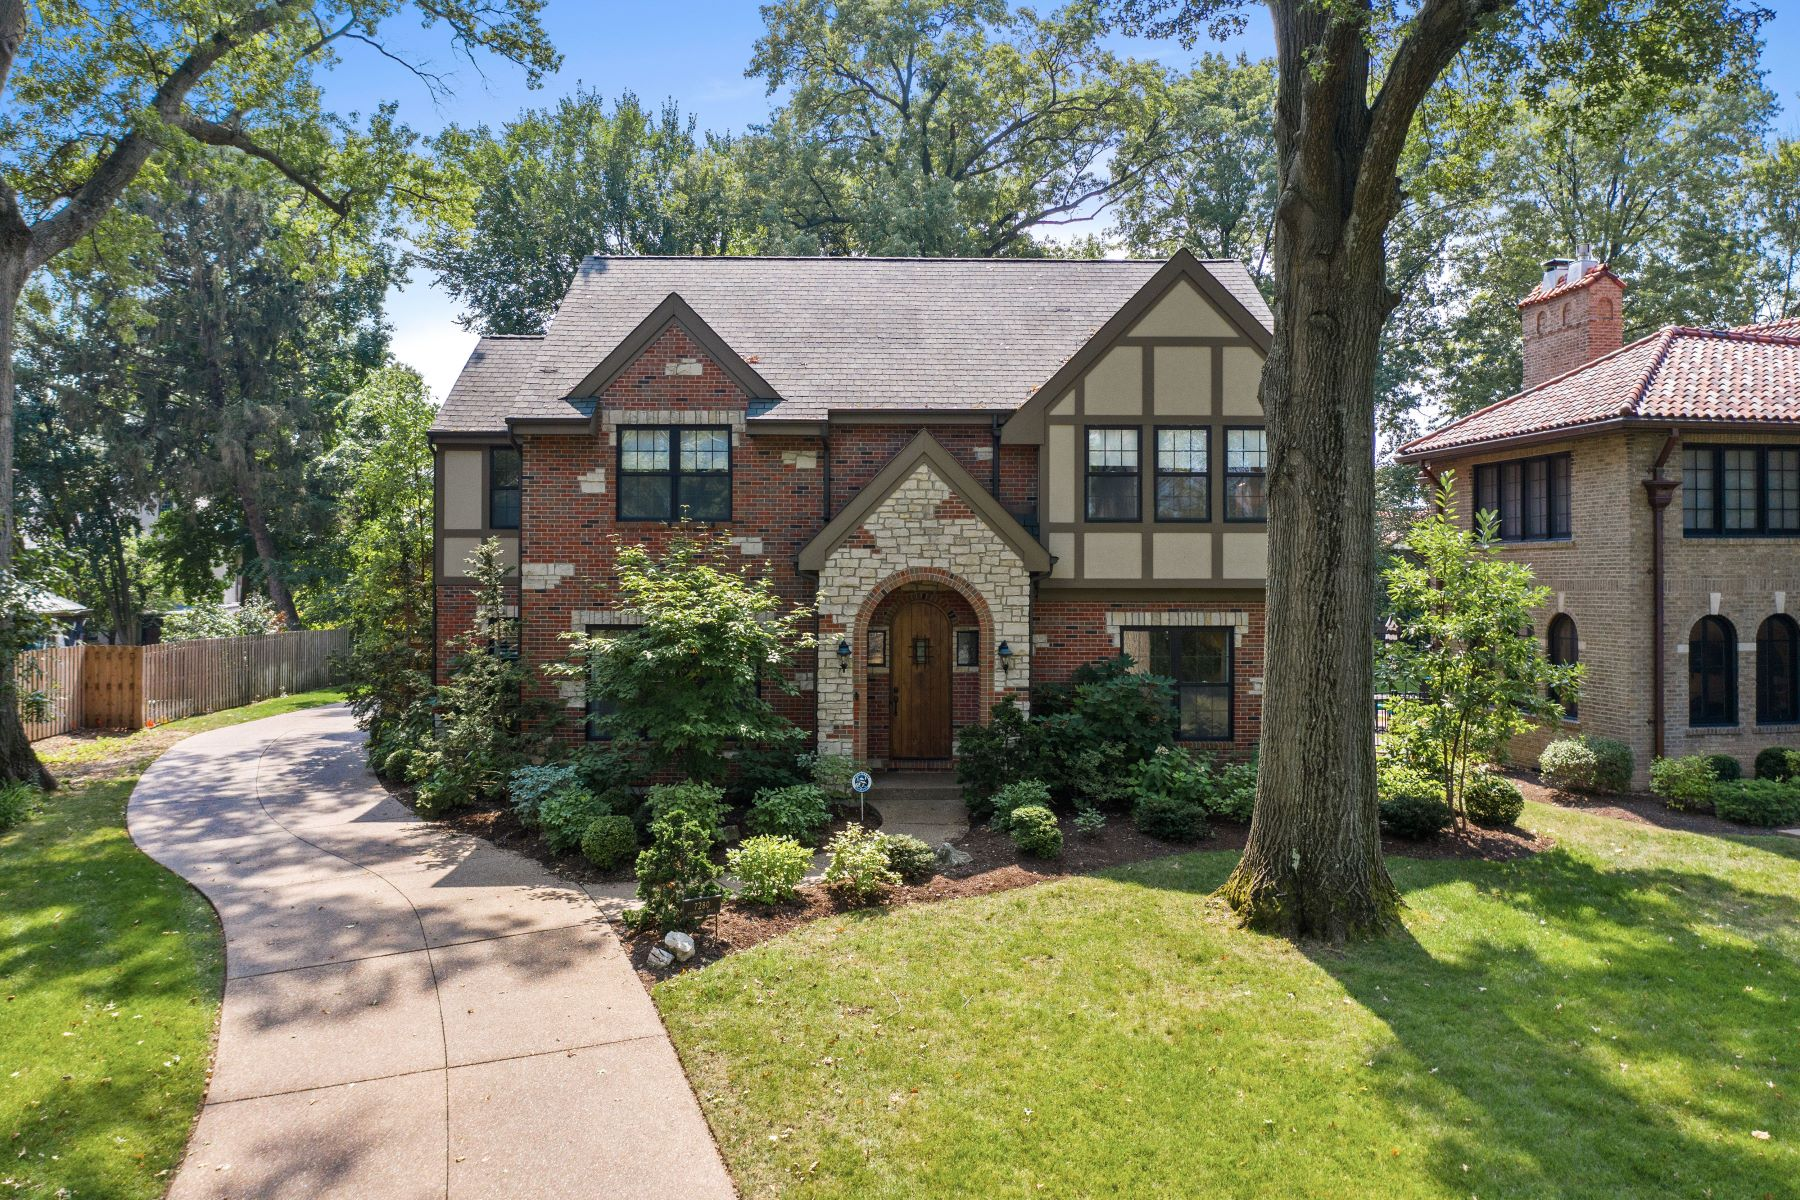 Property for Sale at Better Than New! 7280 Creveling Drive University City, Missouri 63130 United States